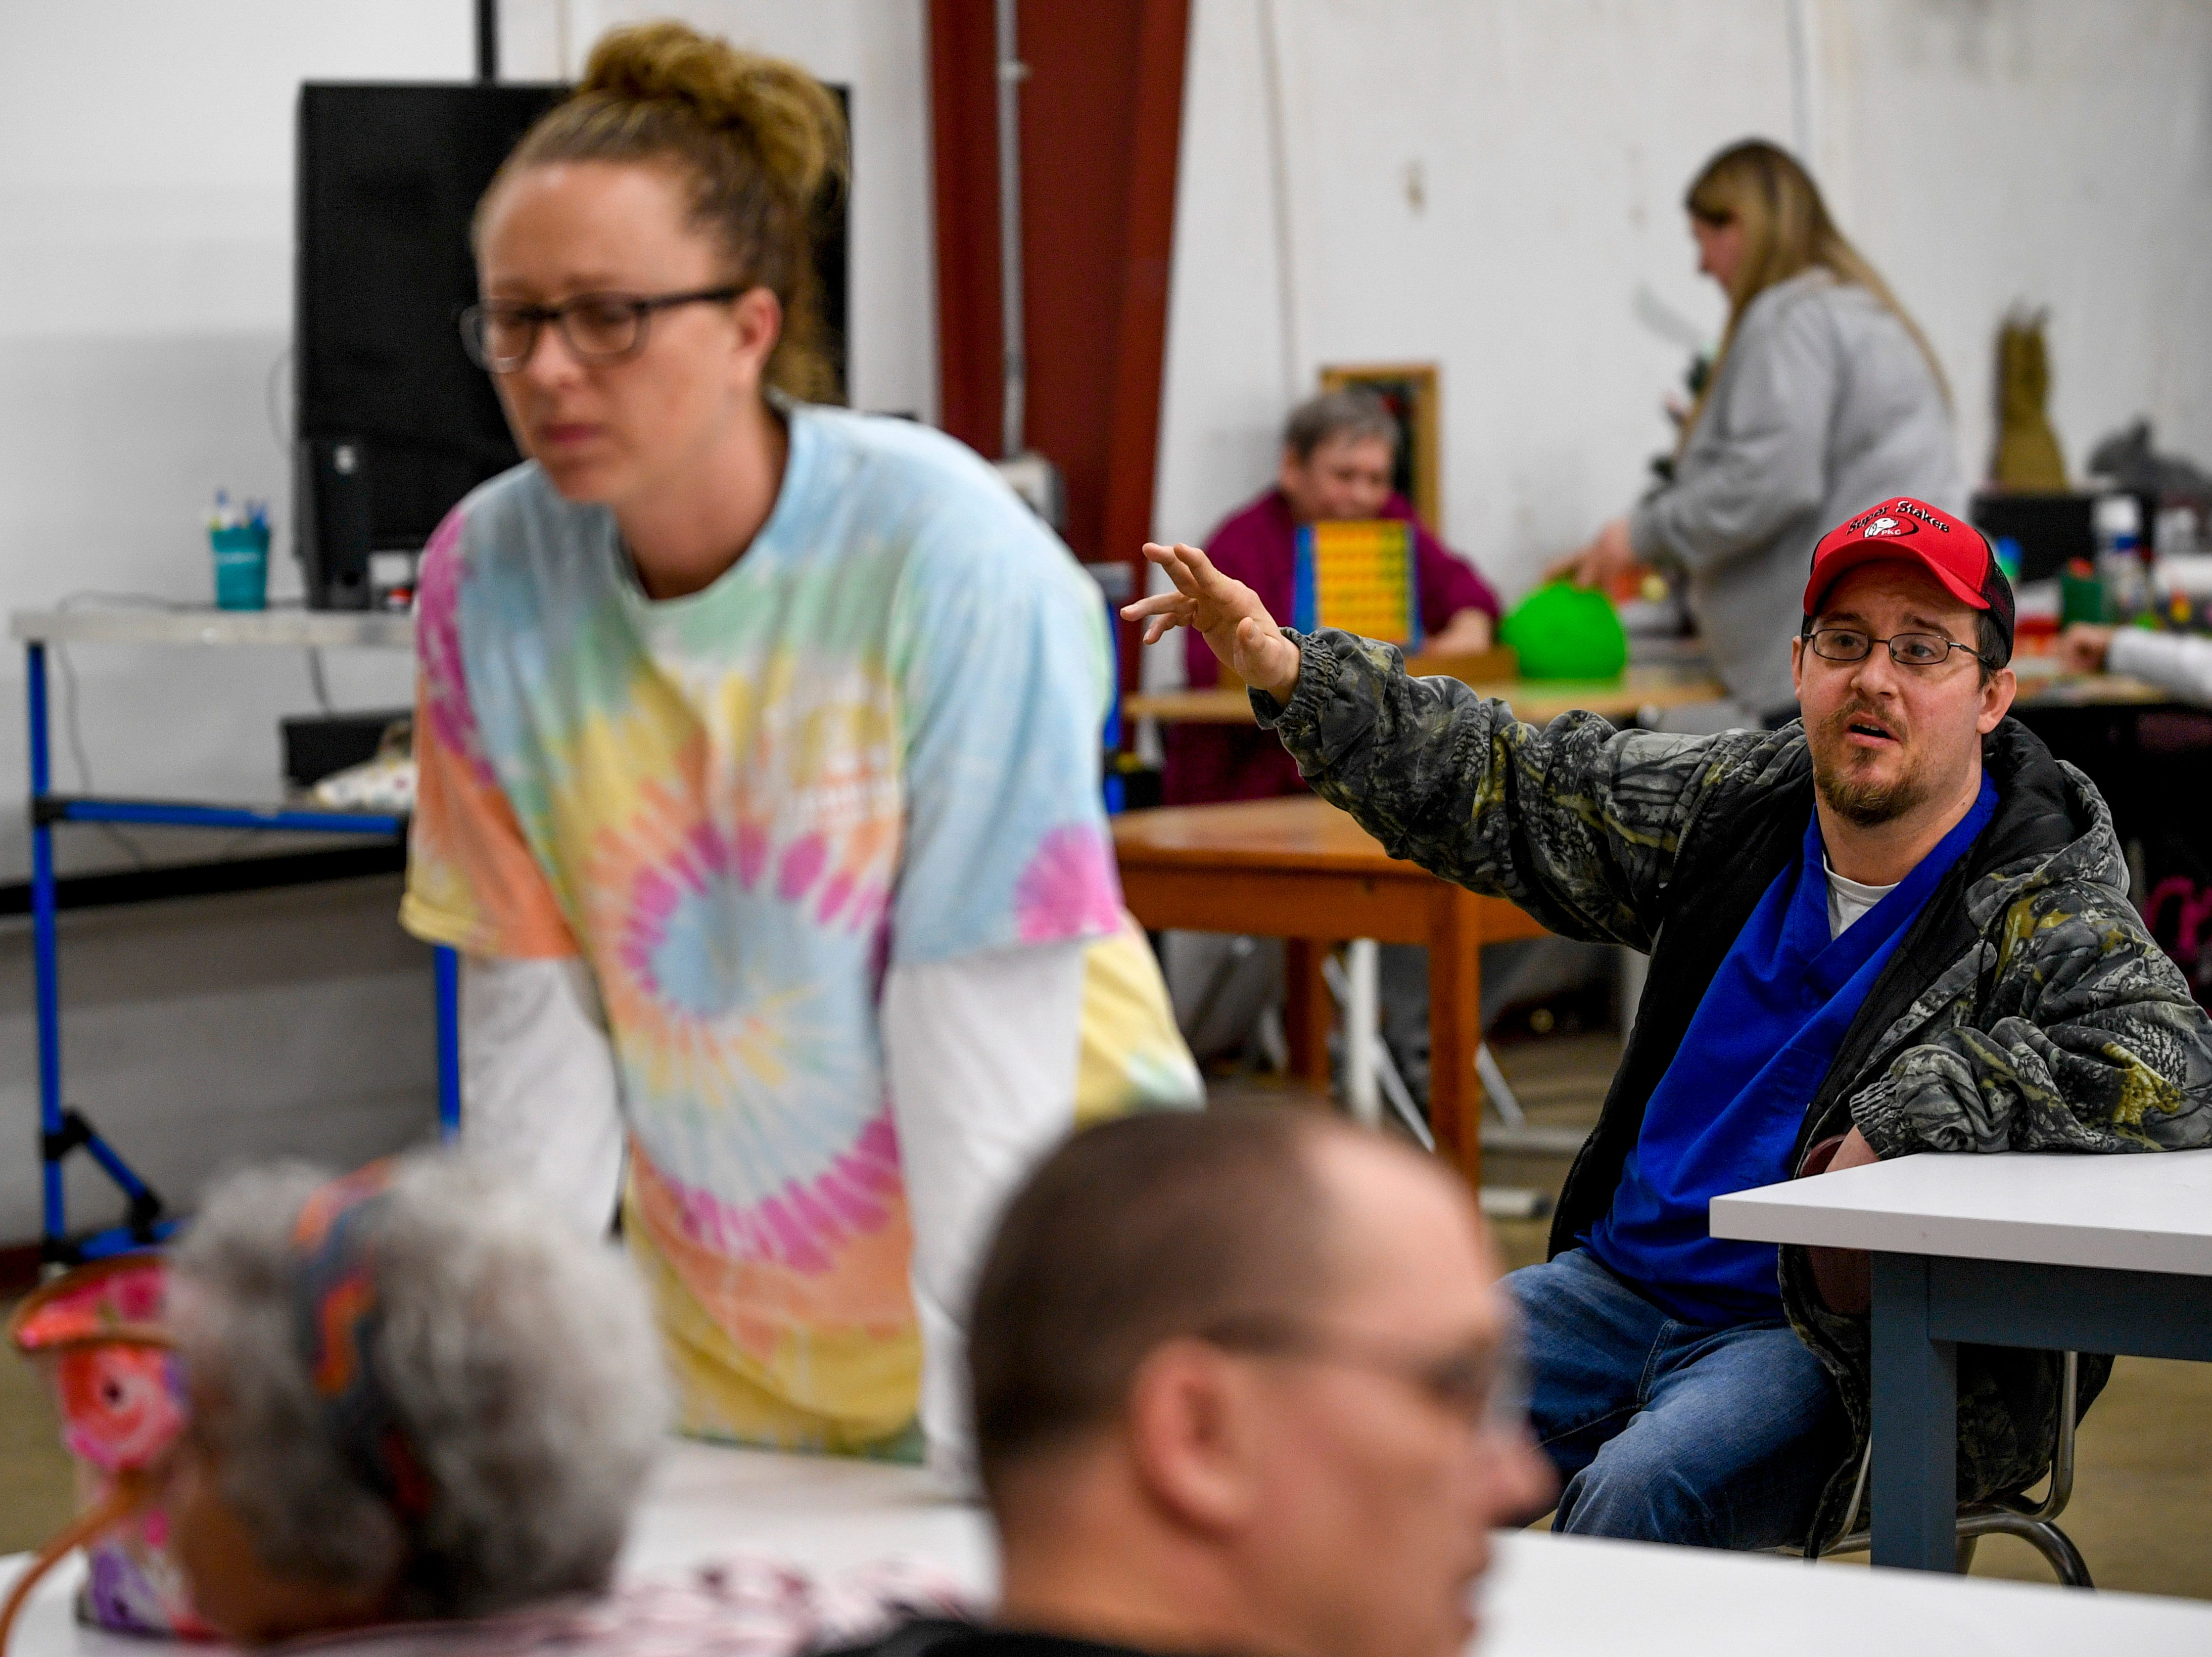 Jon Bailey raises his hand to guess a letter in a game of spelling hangman during classes at McNairy Developmental Services in Selmer, Tenn., on Thursday, Feb. 21, 2019.